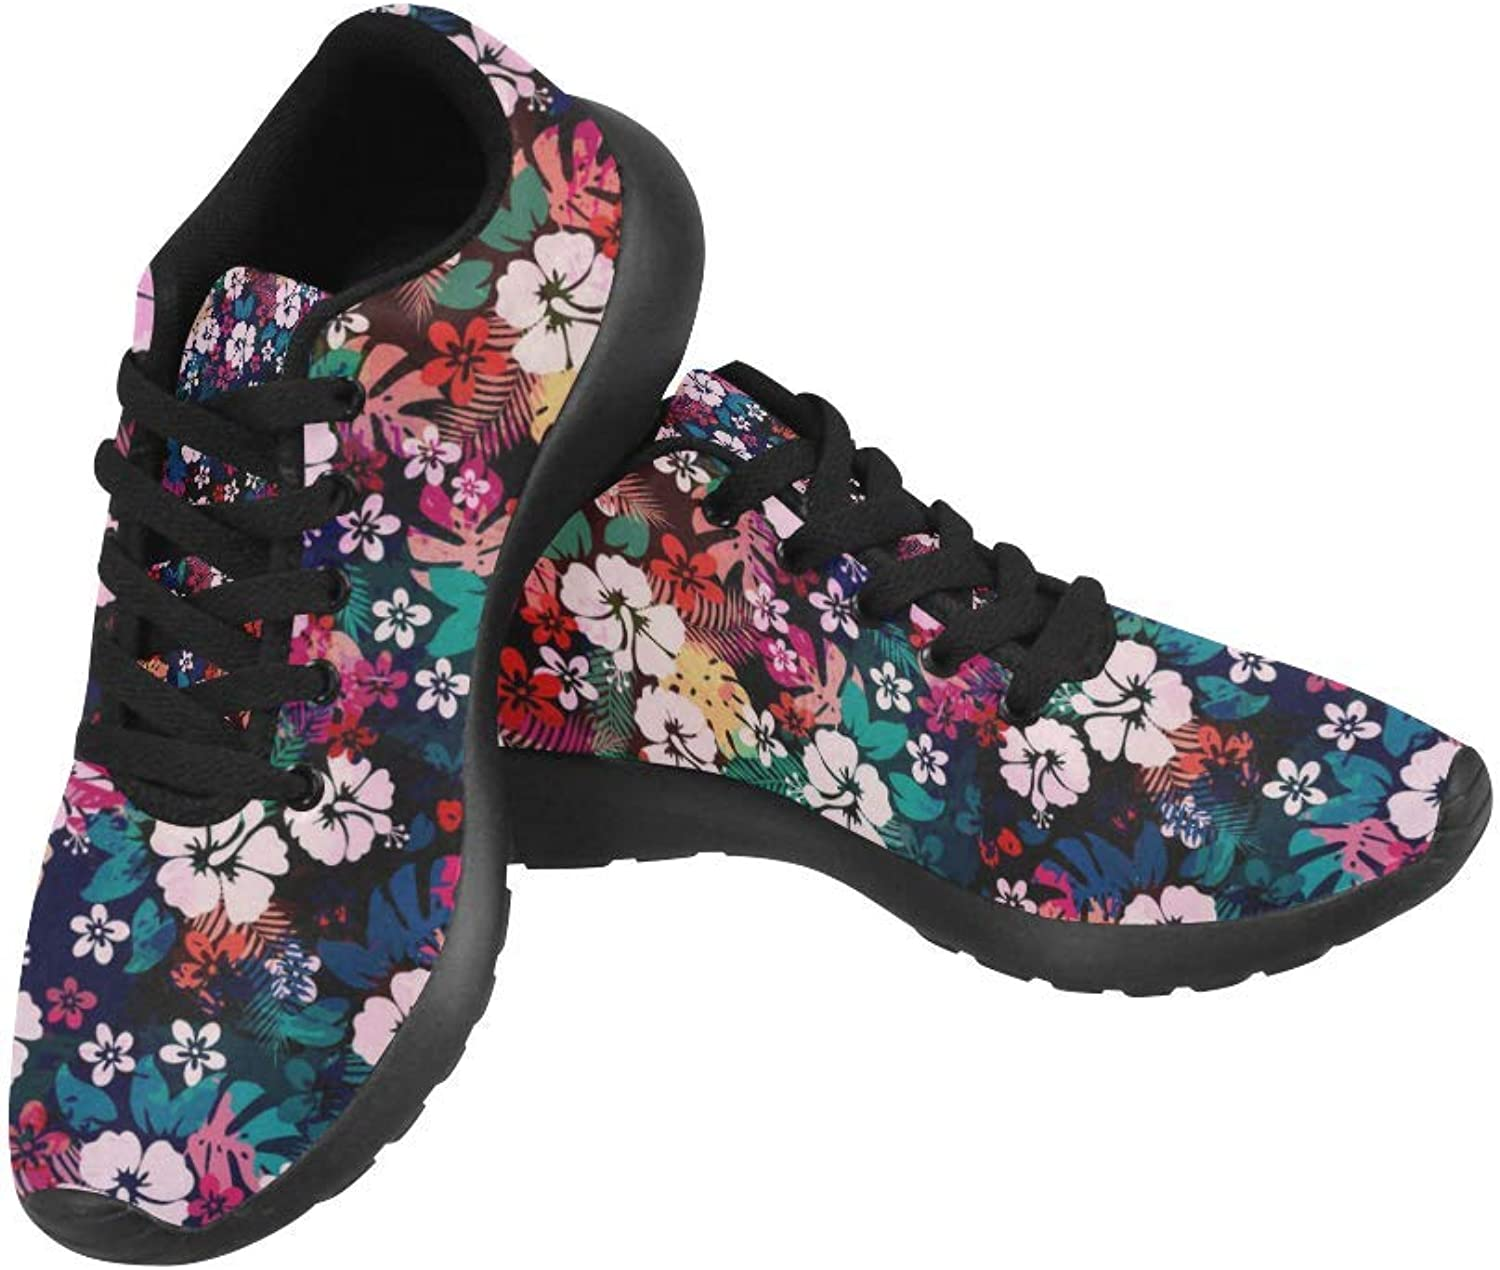 InterestPrint Hawaiian Tropical Floral Pattern Print on Women's Running shoes Casual Lightweight Athletic Sneakers US Size 6-15